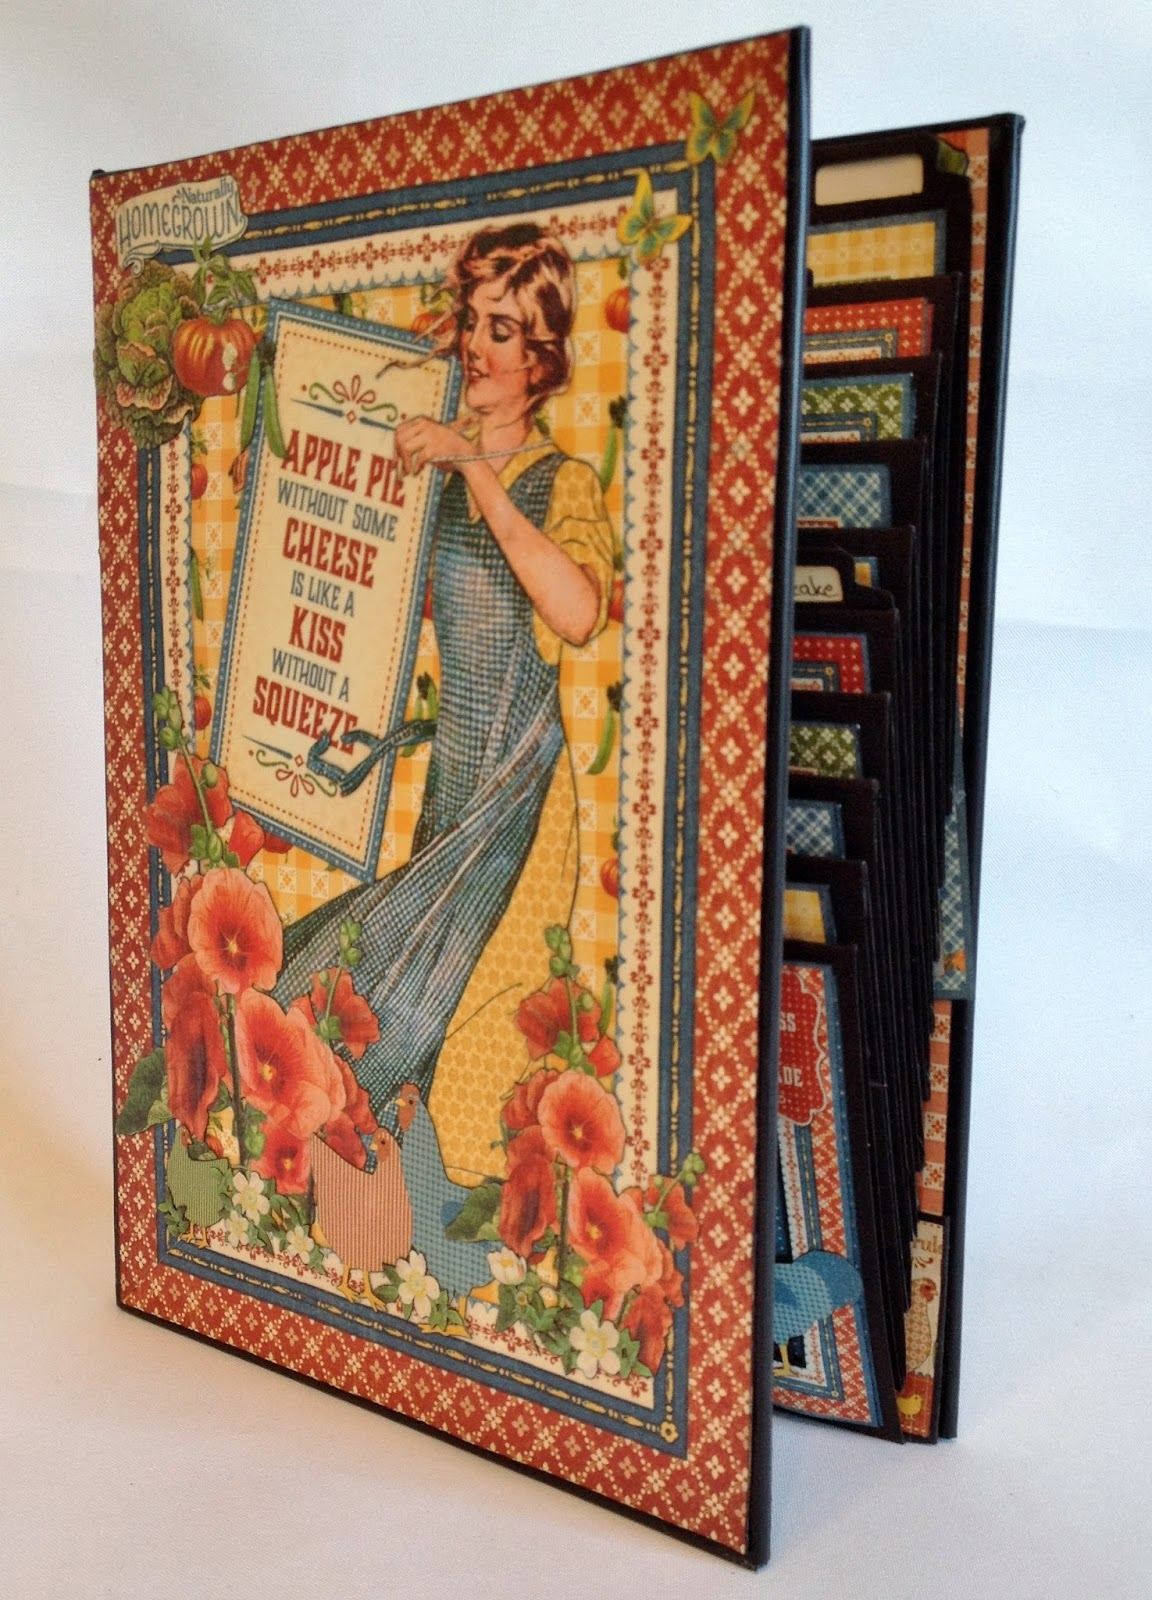 How to make scrapbook album cover - Used 3 Layers Of Multi Medium Matte To Glue Down The Images On The Cover So It Can Be Used In A Kitchen Without Getting Dirty